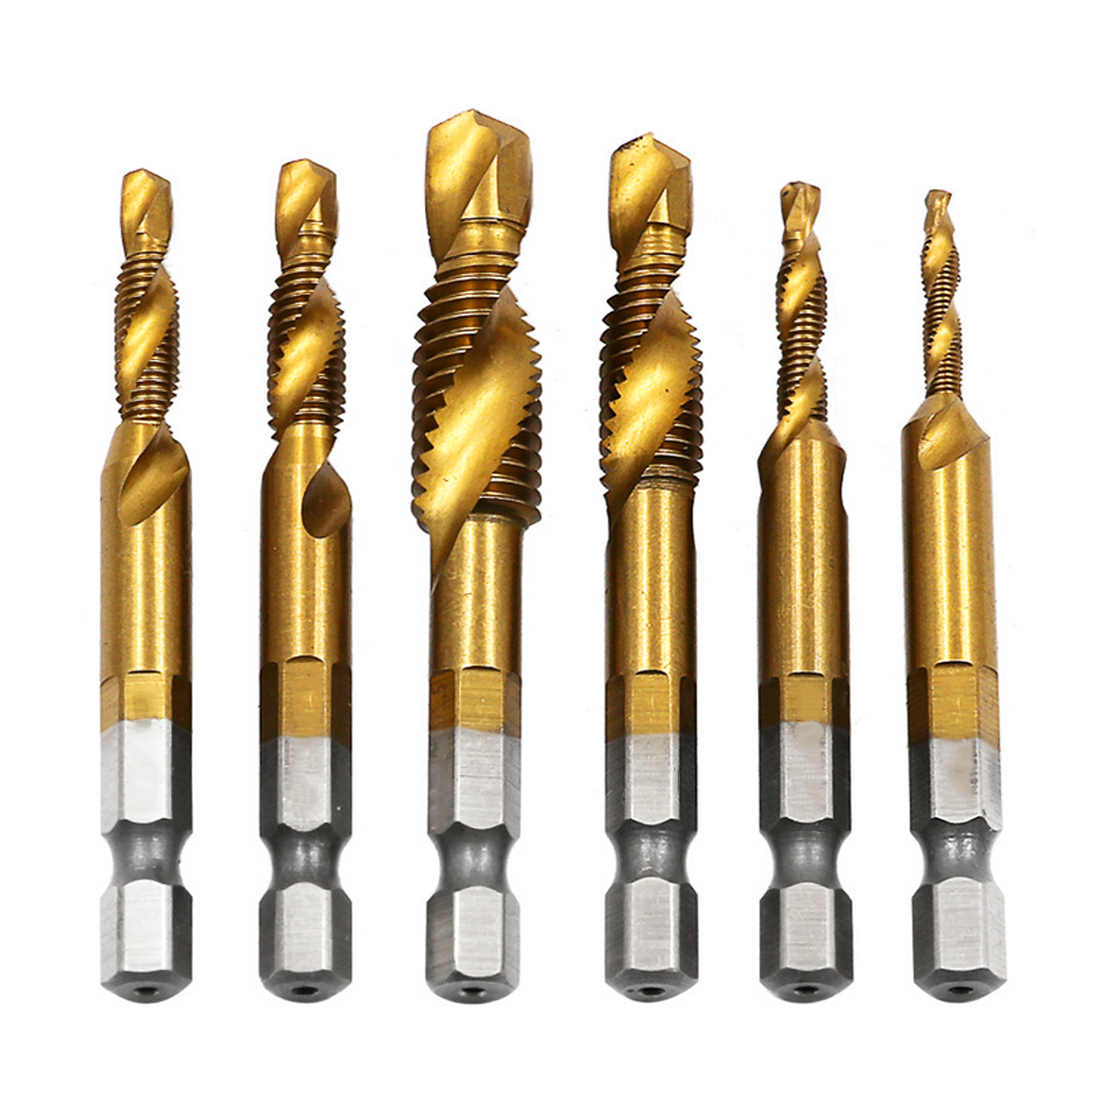 Hand Tap Drill Bits HSS 4341 Screw Spiral Point Thread M3 M4 M5 M6 M8 M10 Metalworking Hex Shank Machine Taps Kit Metric Plug